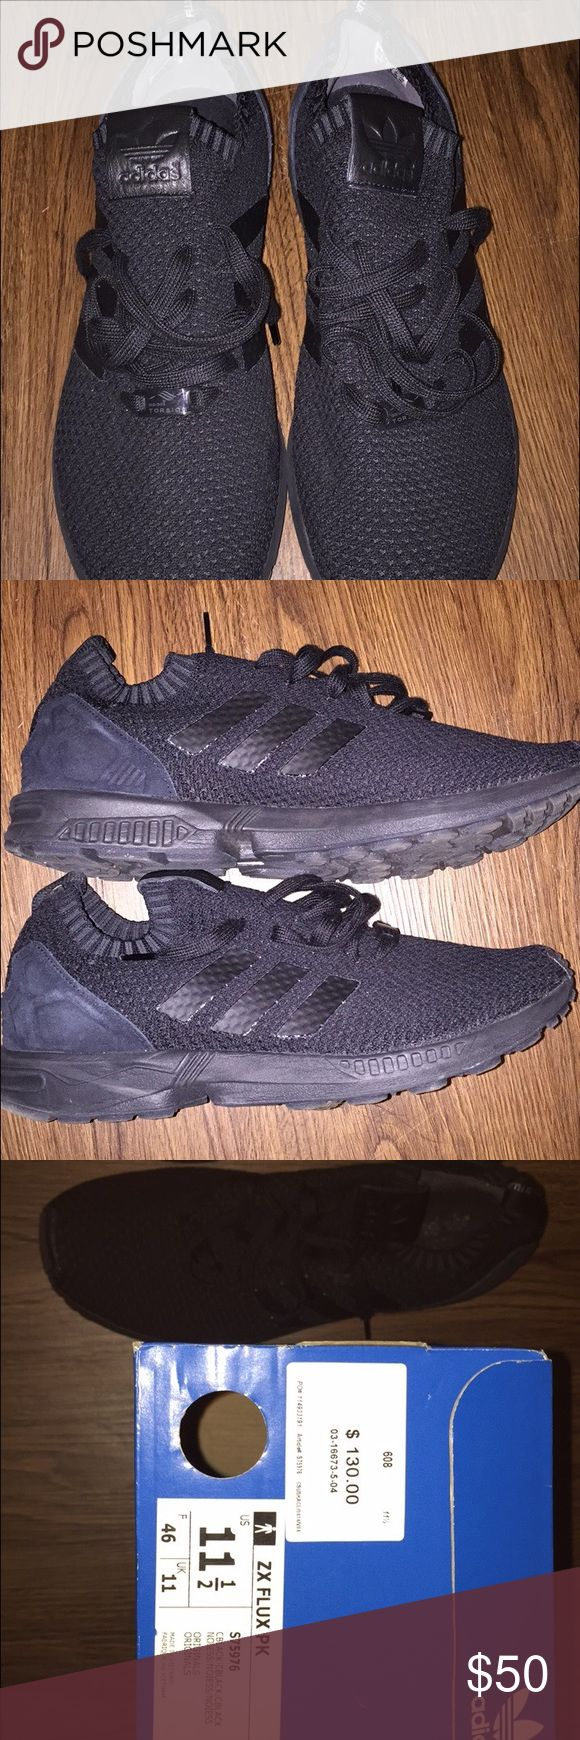 Adidas zx flux pk All black zx flux pk. Condition 9.5/10 Adidas Shoes Athletic Shoes